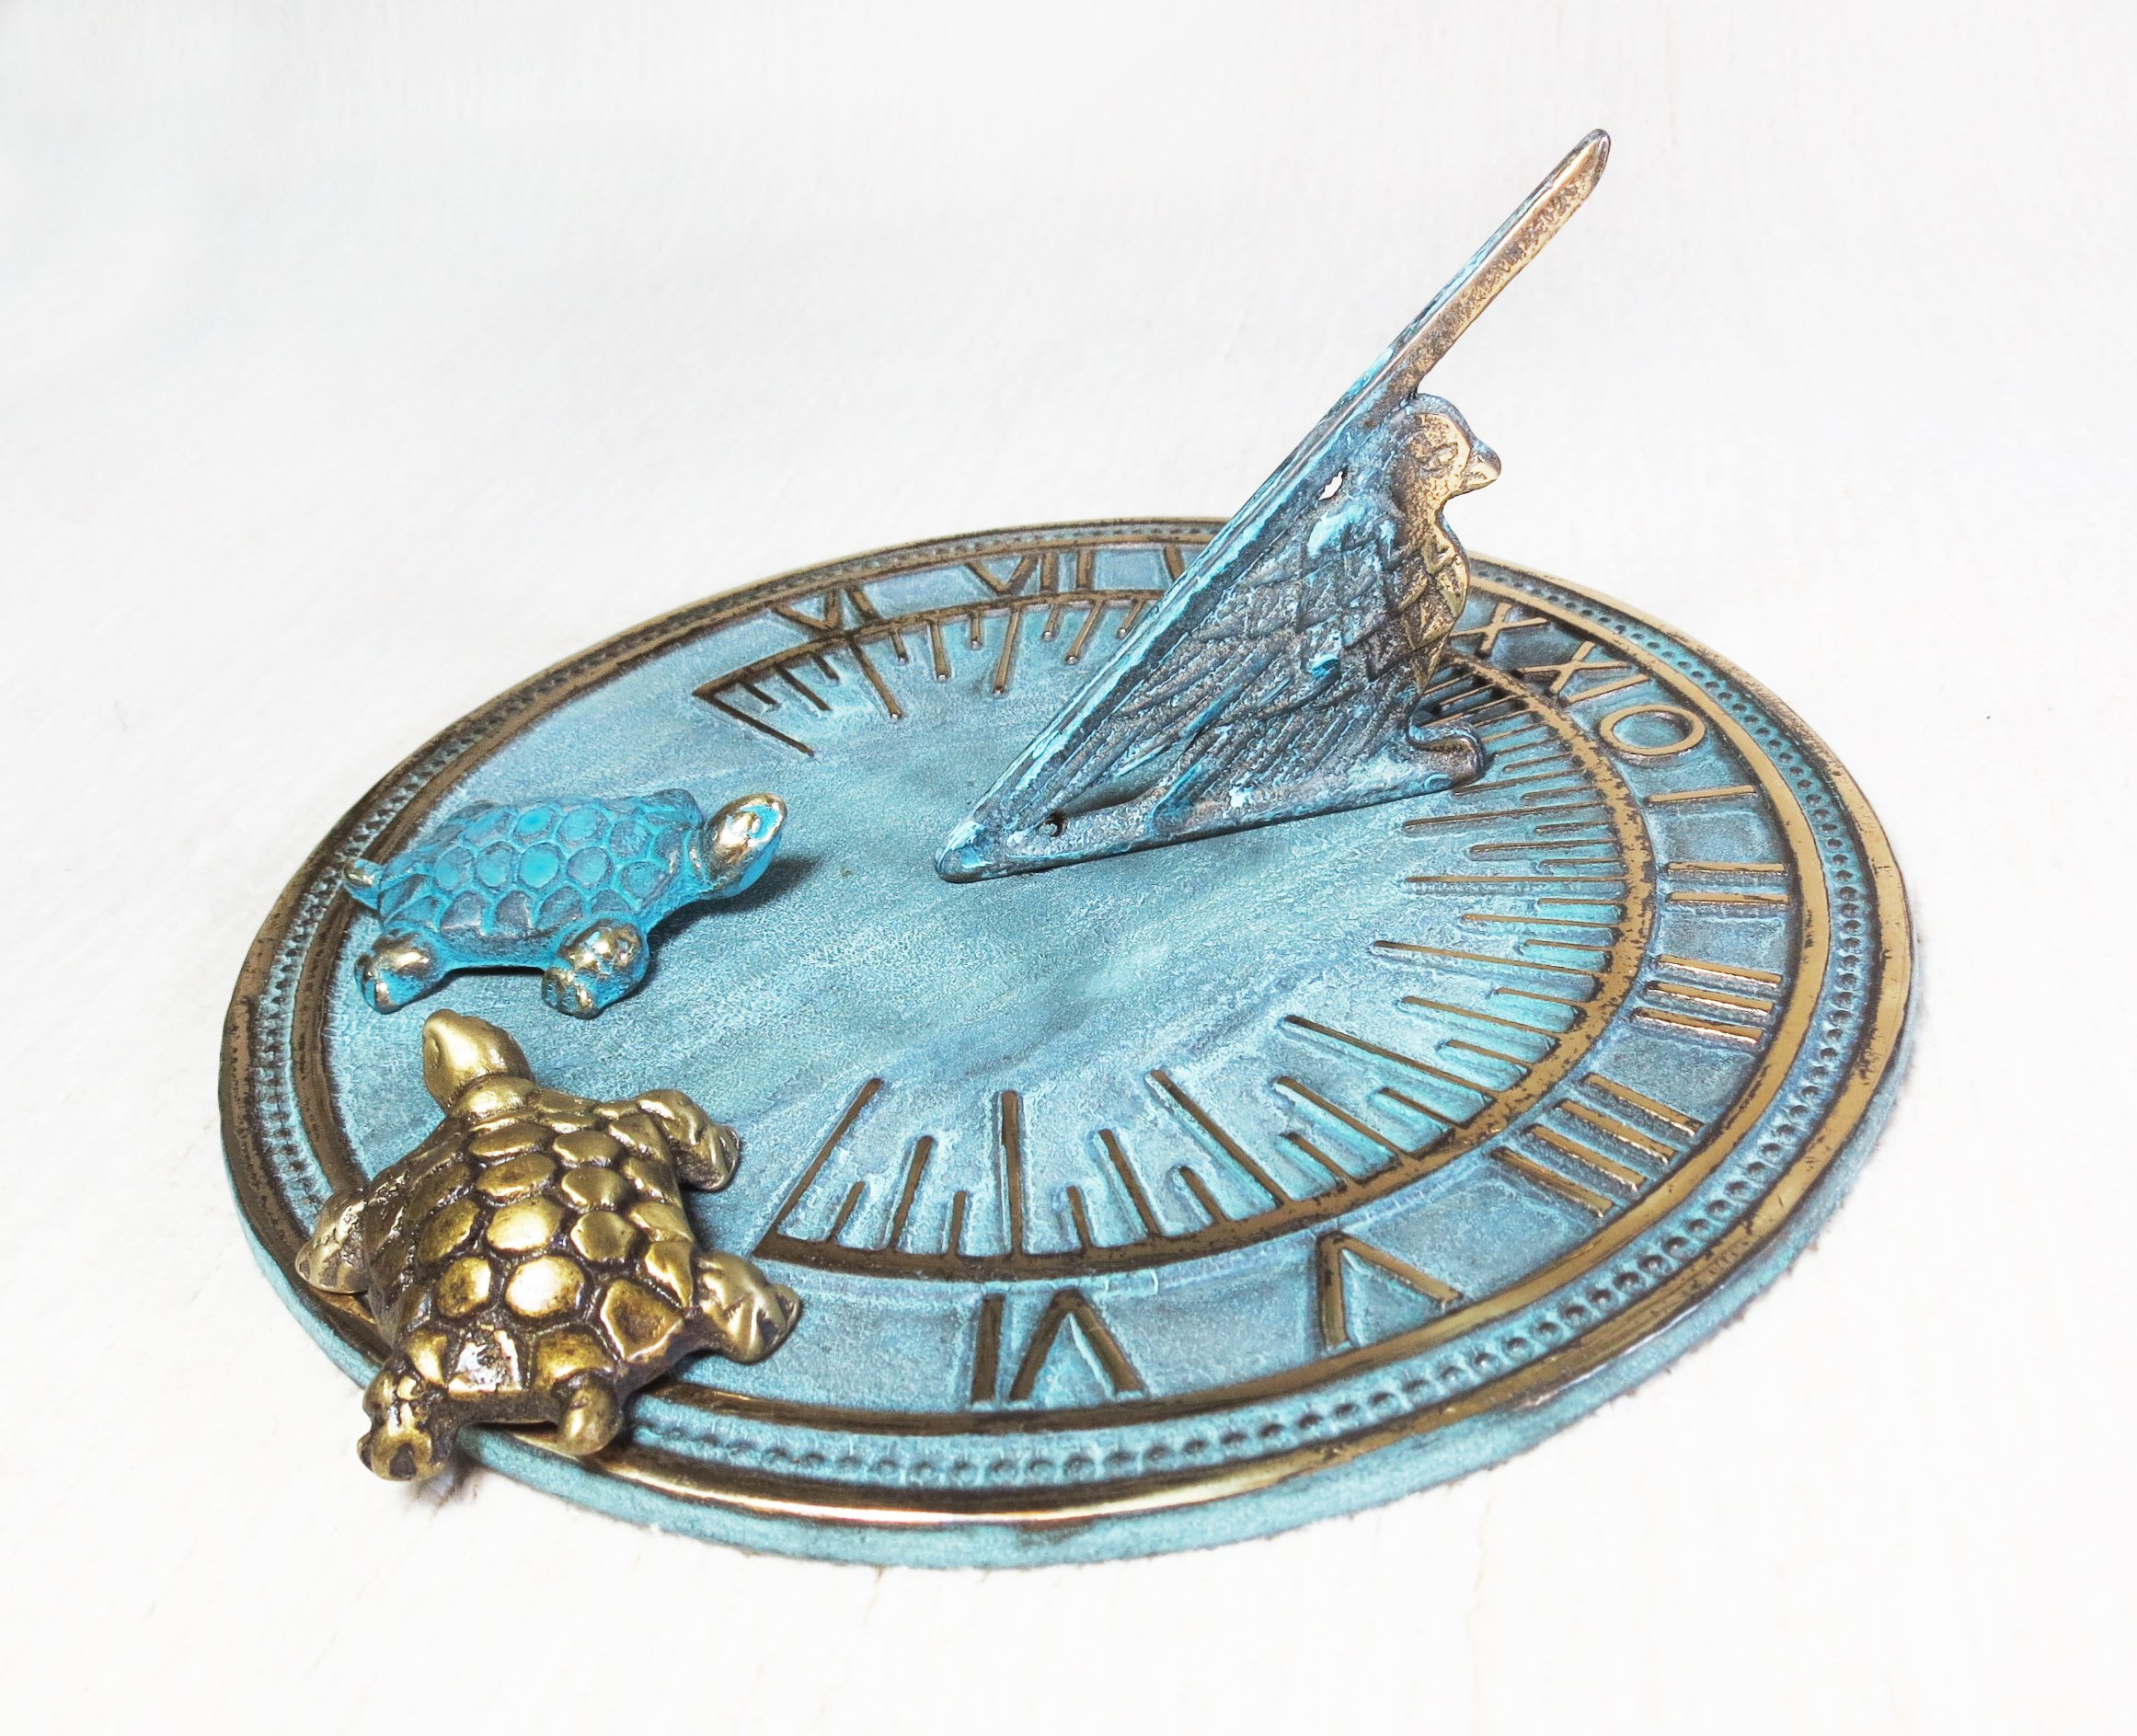 Decorative Brass Sundial 7'' inches wide - with 2 Little Turtles